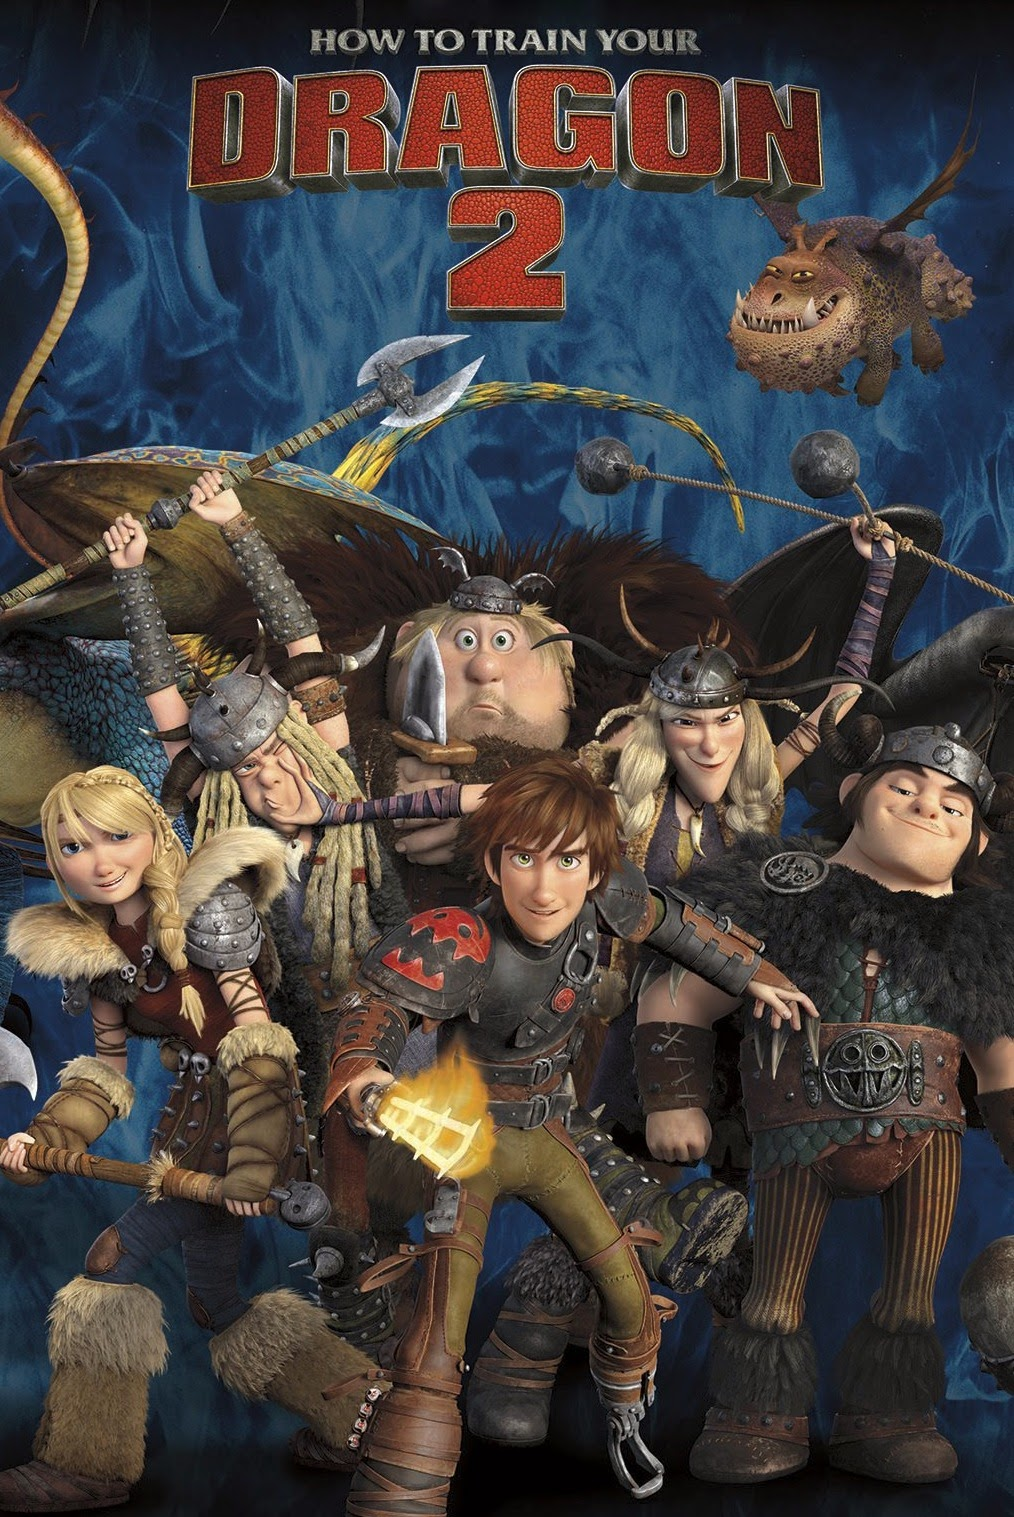 How To Train Your Dragon 2 (2014) WEB-DL Full Movie + Subtitle Indonesia